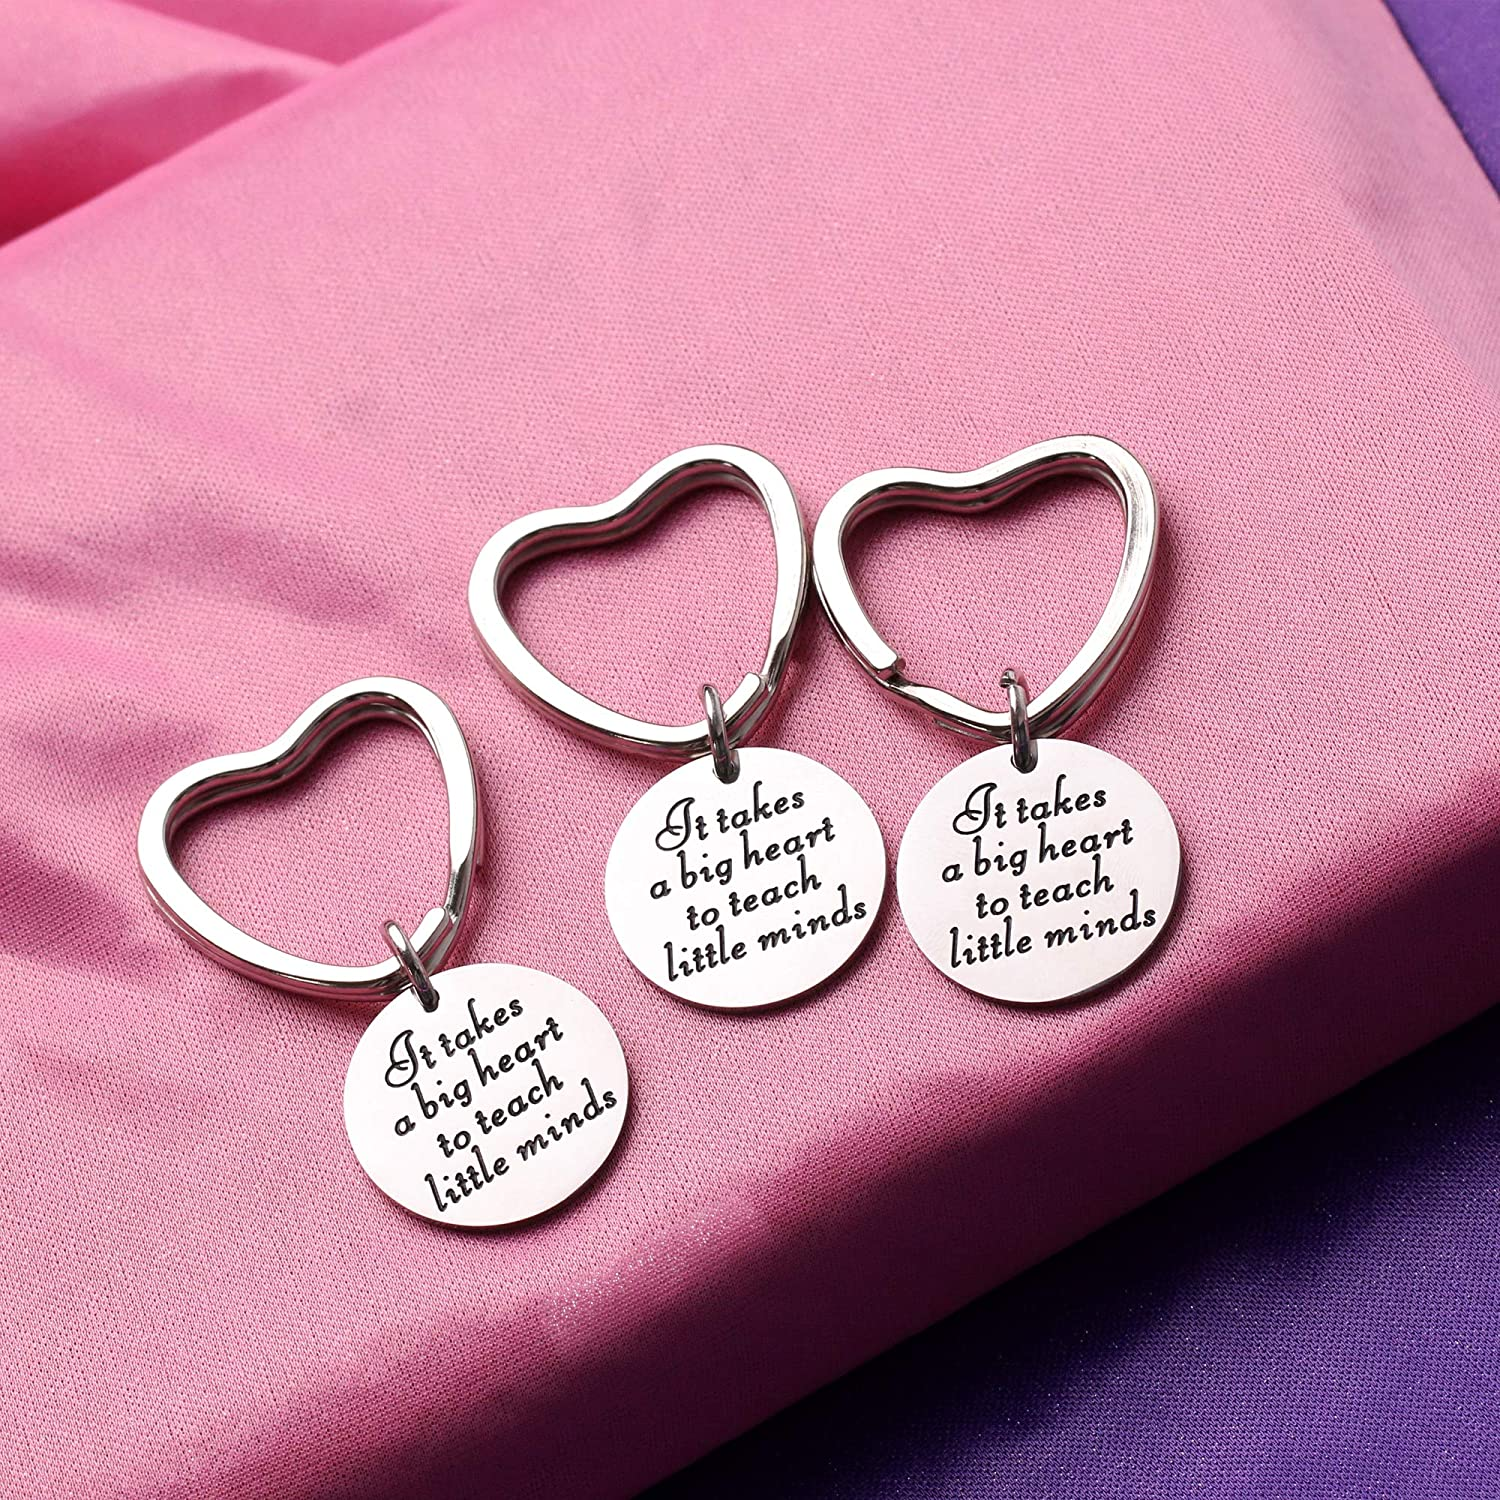 AGR8T Key Rings Teacher Appreciation Gifts Teachers Day It Takes a Big Heart to Teach Little Minds Silver